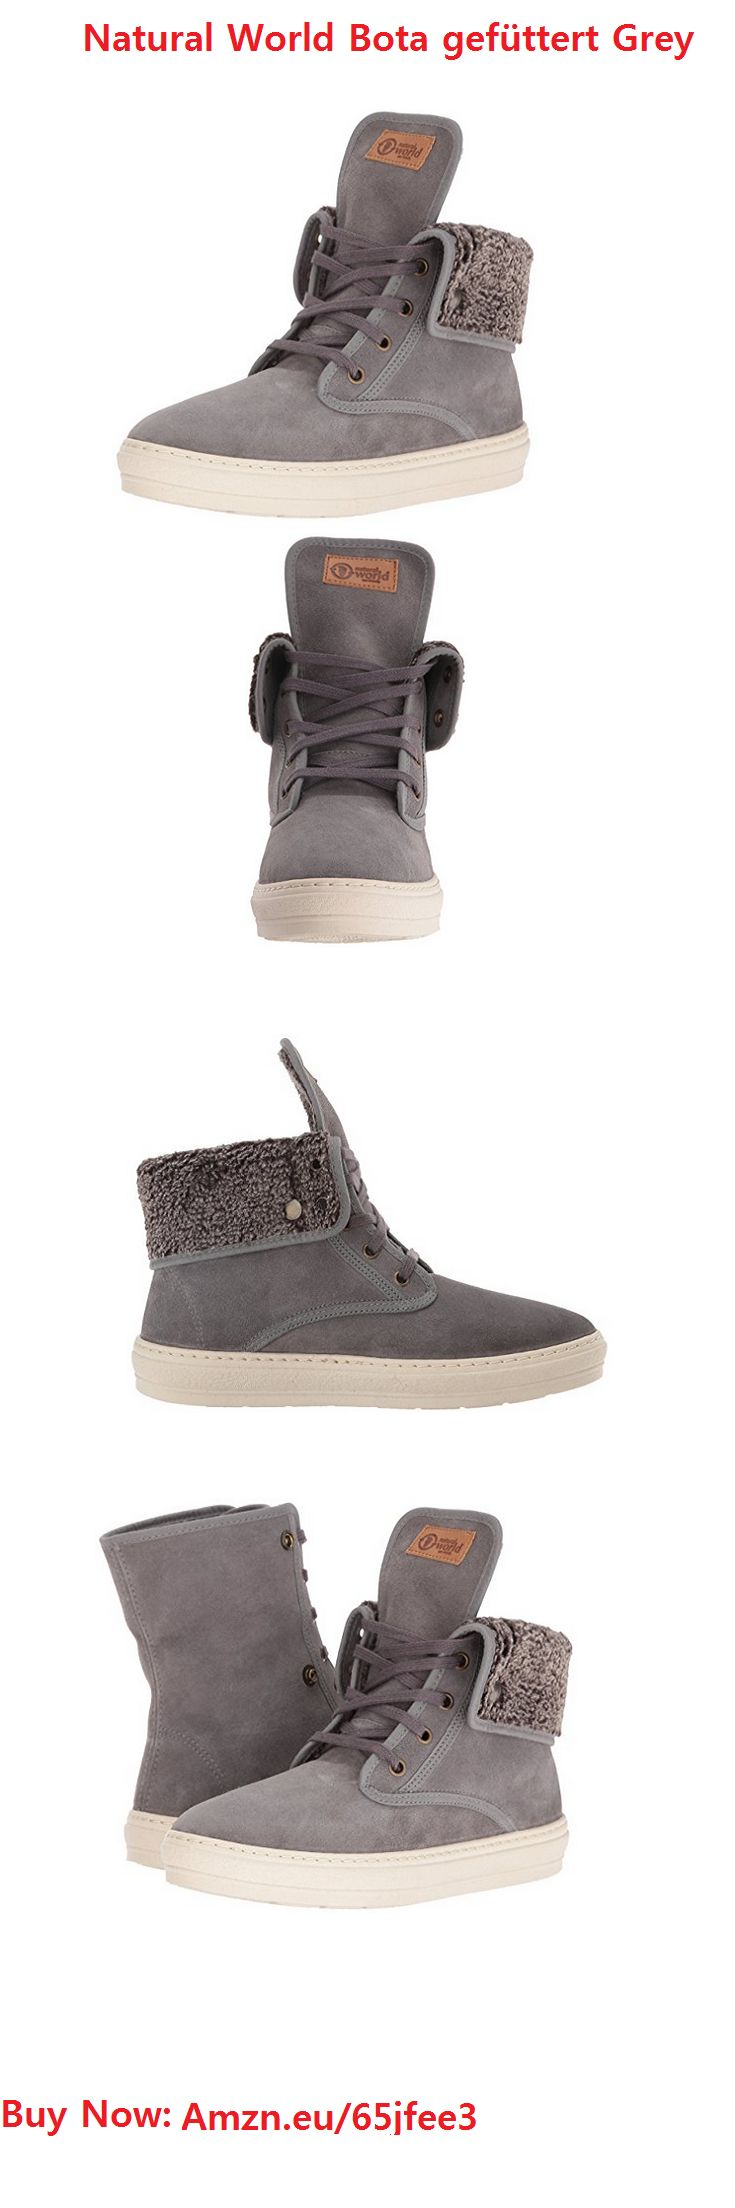 """Natural World Bota gefüttert Grey. NATURAL WORLD BOTA LINED [GREY]This is a lined version of the Bota from Natural World. The main objective of the Spanish brand is respect for the environment. The Bota has a soft faux fur lining to keep your feet warm on cold days. The collar has two snap fasteners and can be turned down. Sole and upper are sewn together for additional durability. leather upper lining 100% polyester synthetic sole faux fur lining collar can be turned down """"made in Green""""…"""